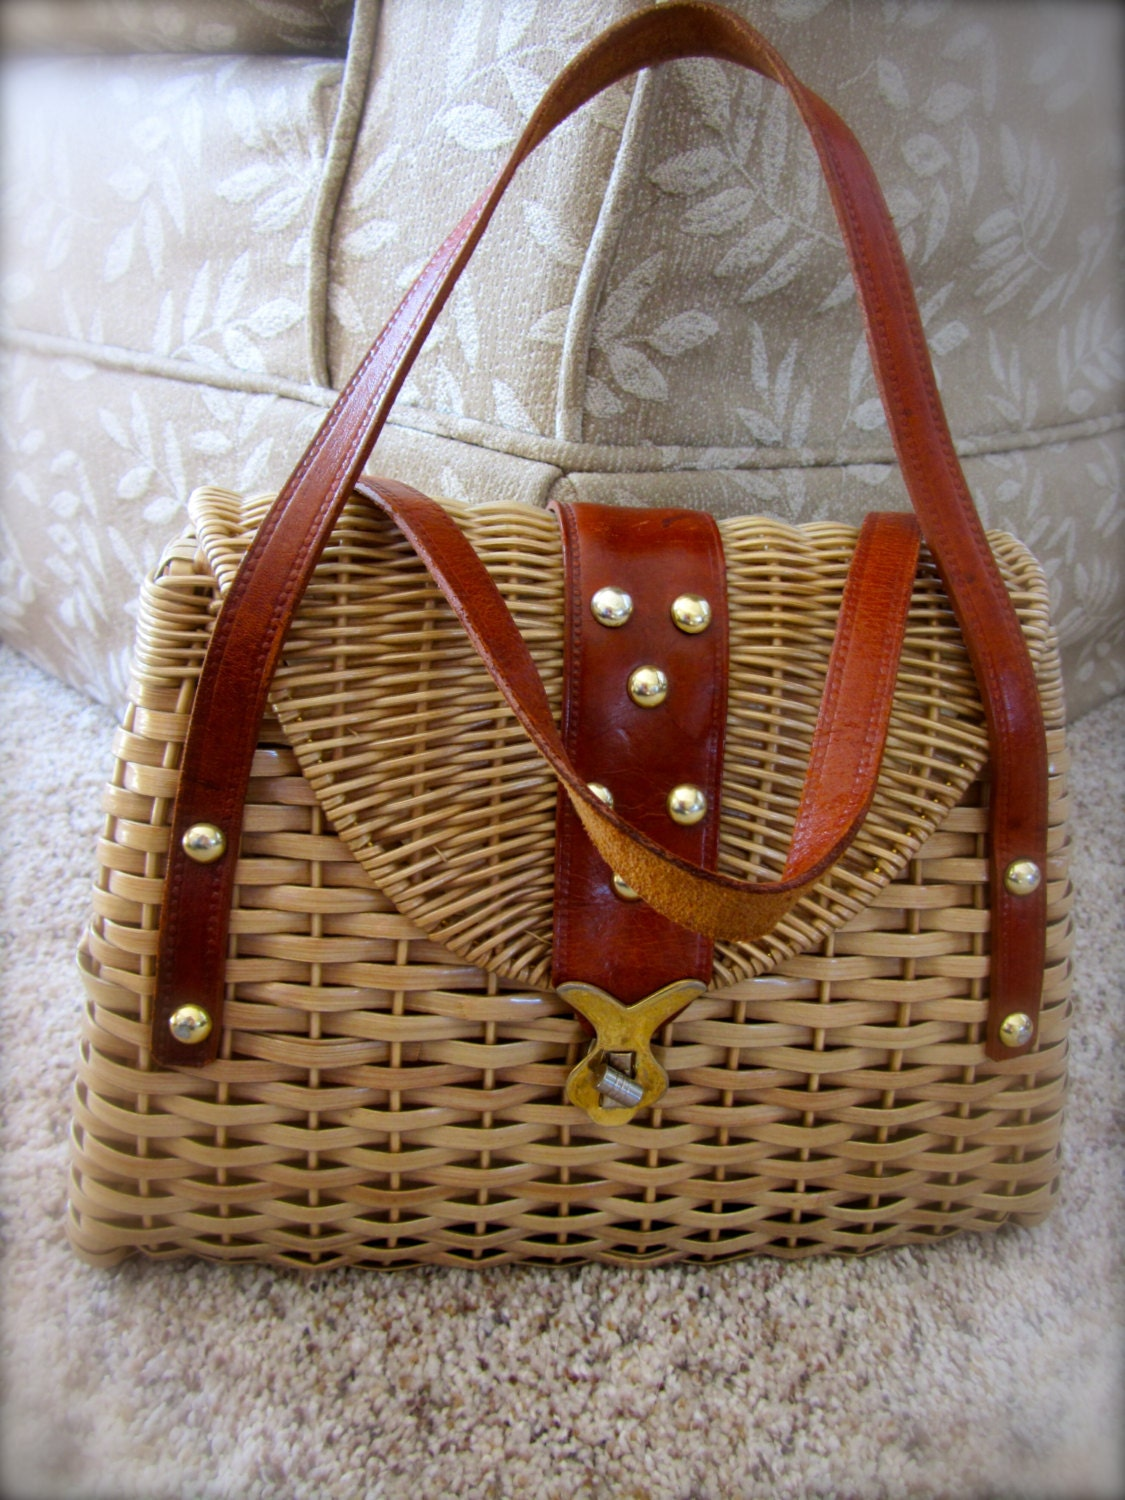 Sale Vintage Retro Woven Basket Purse Handbag Straw Made In